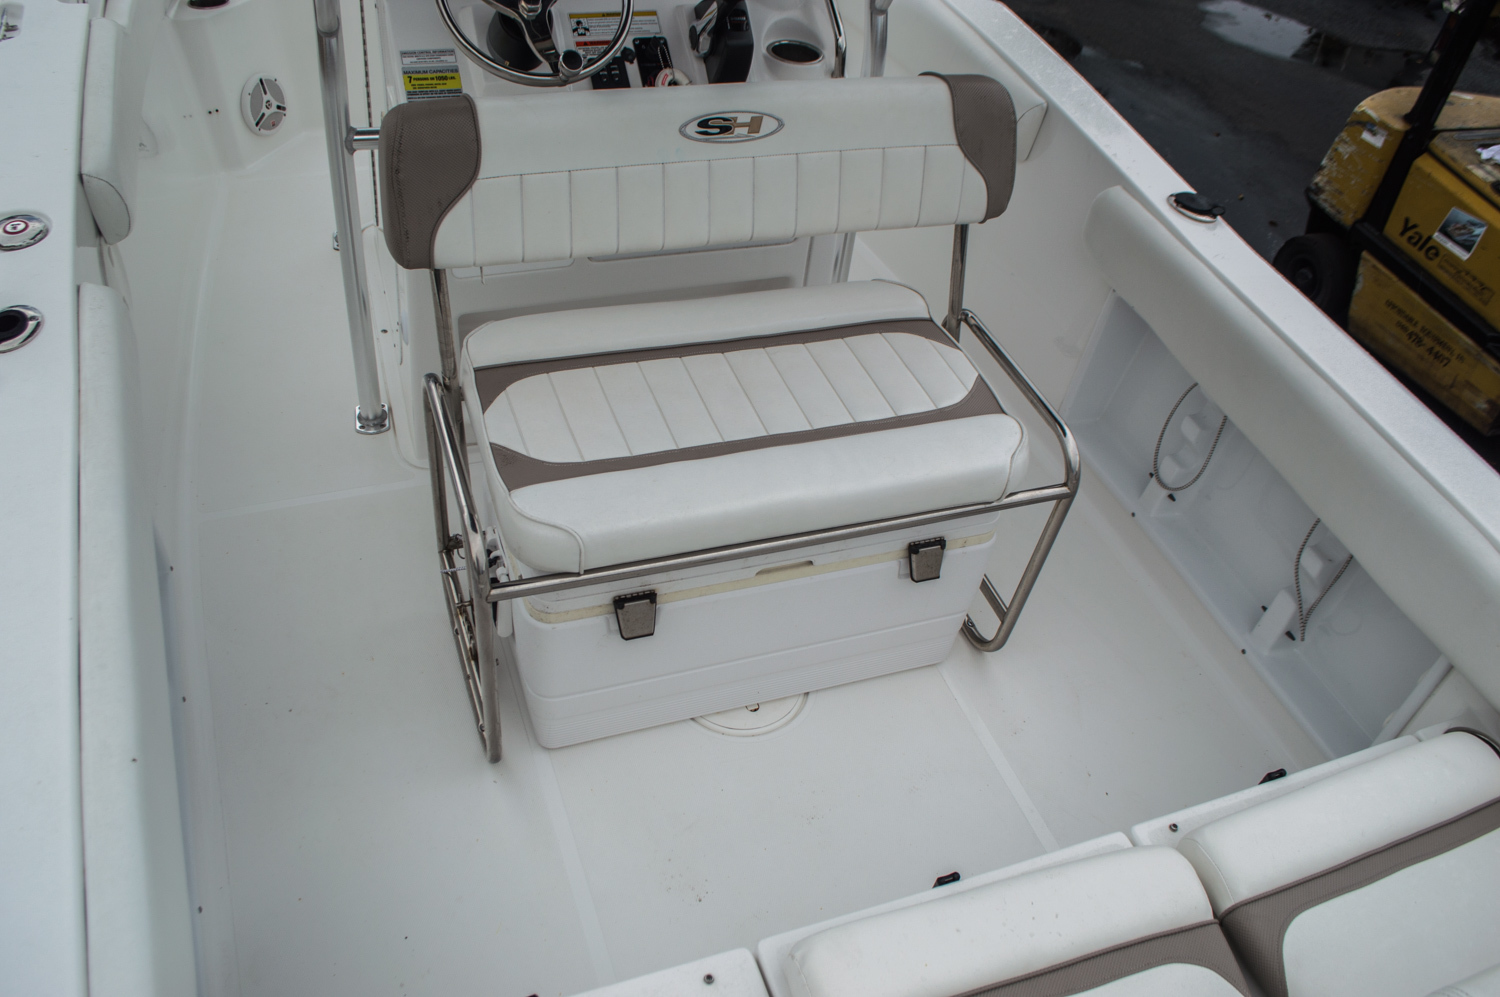 Thumbnail 37 for Used 2012 Sea Hunt 211 Ultra boat for sale in West Palm Beach, FL